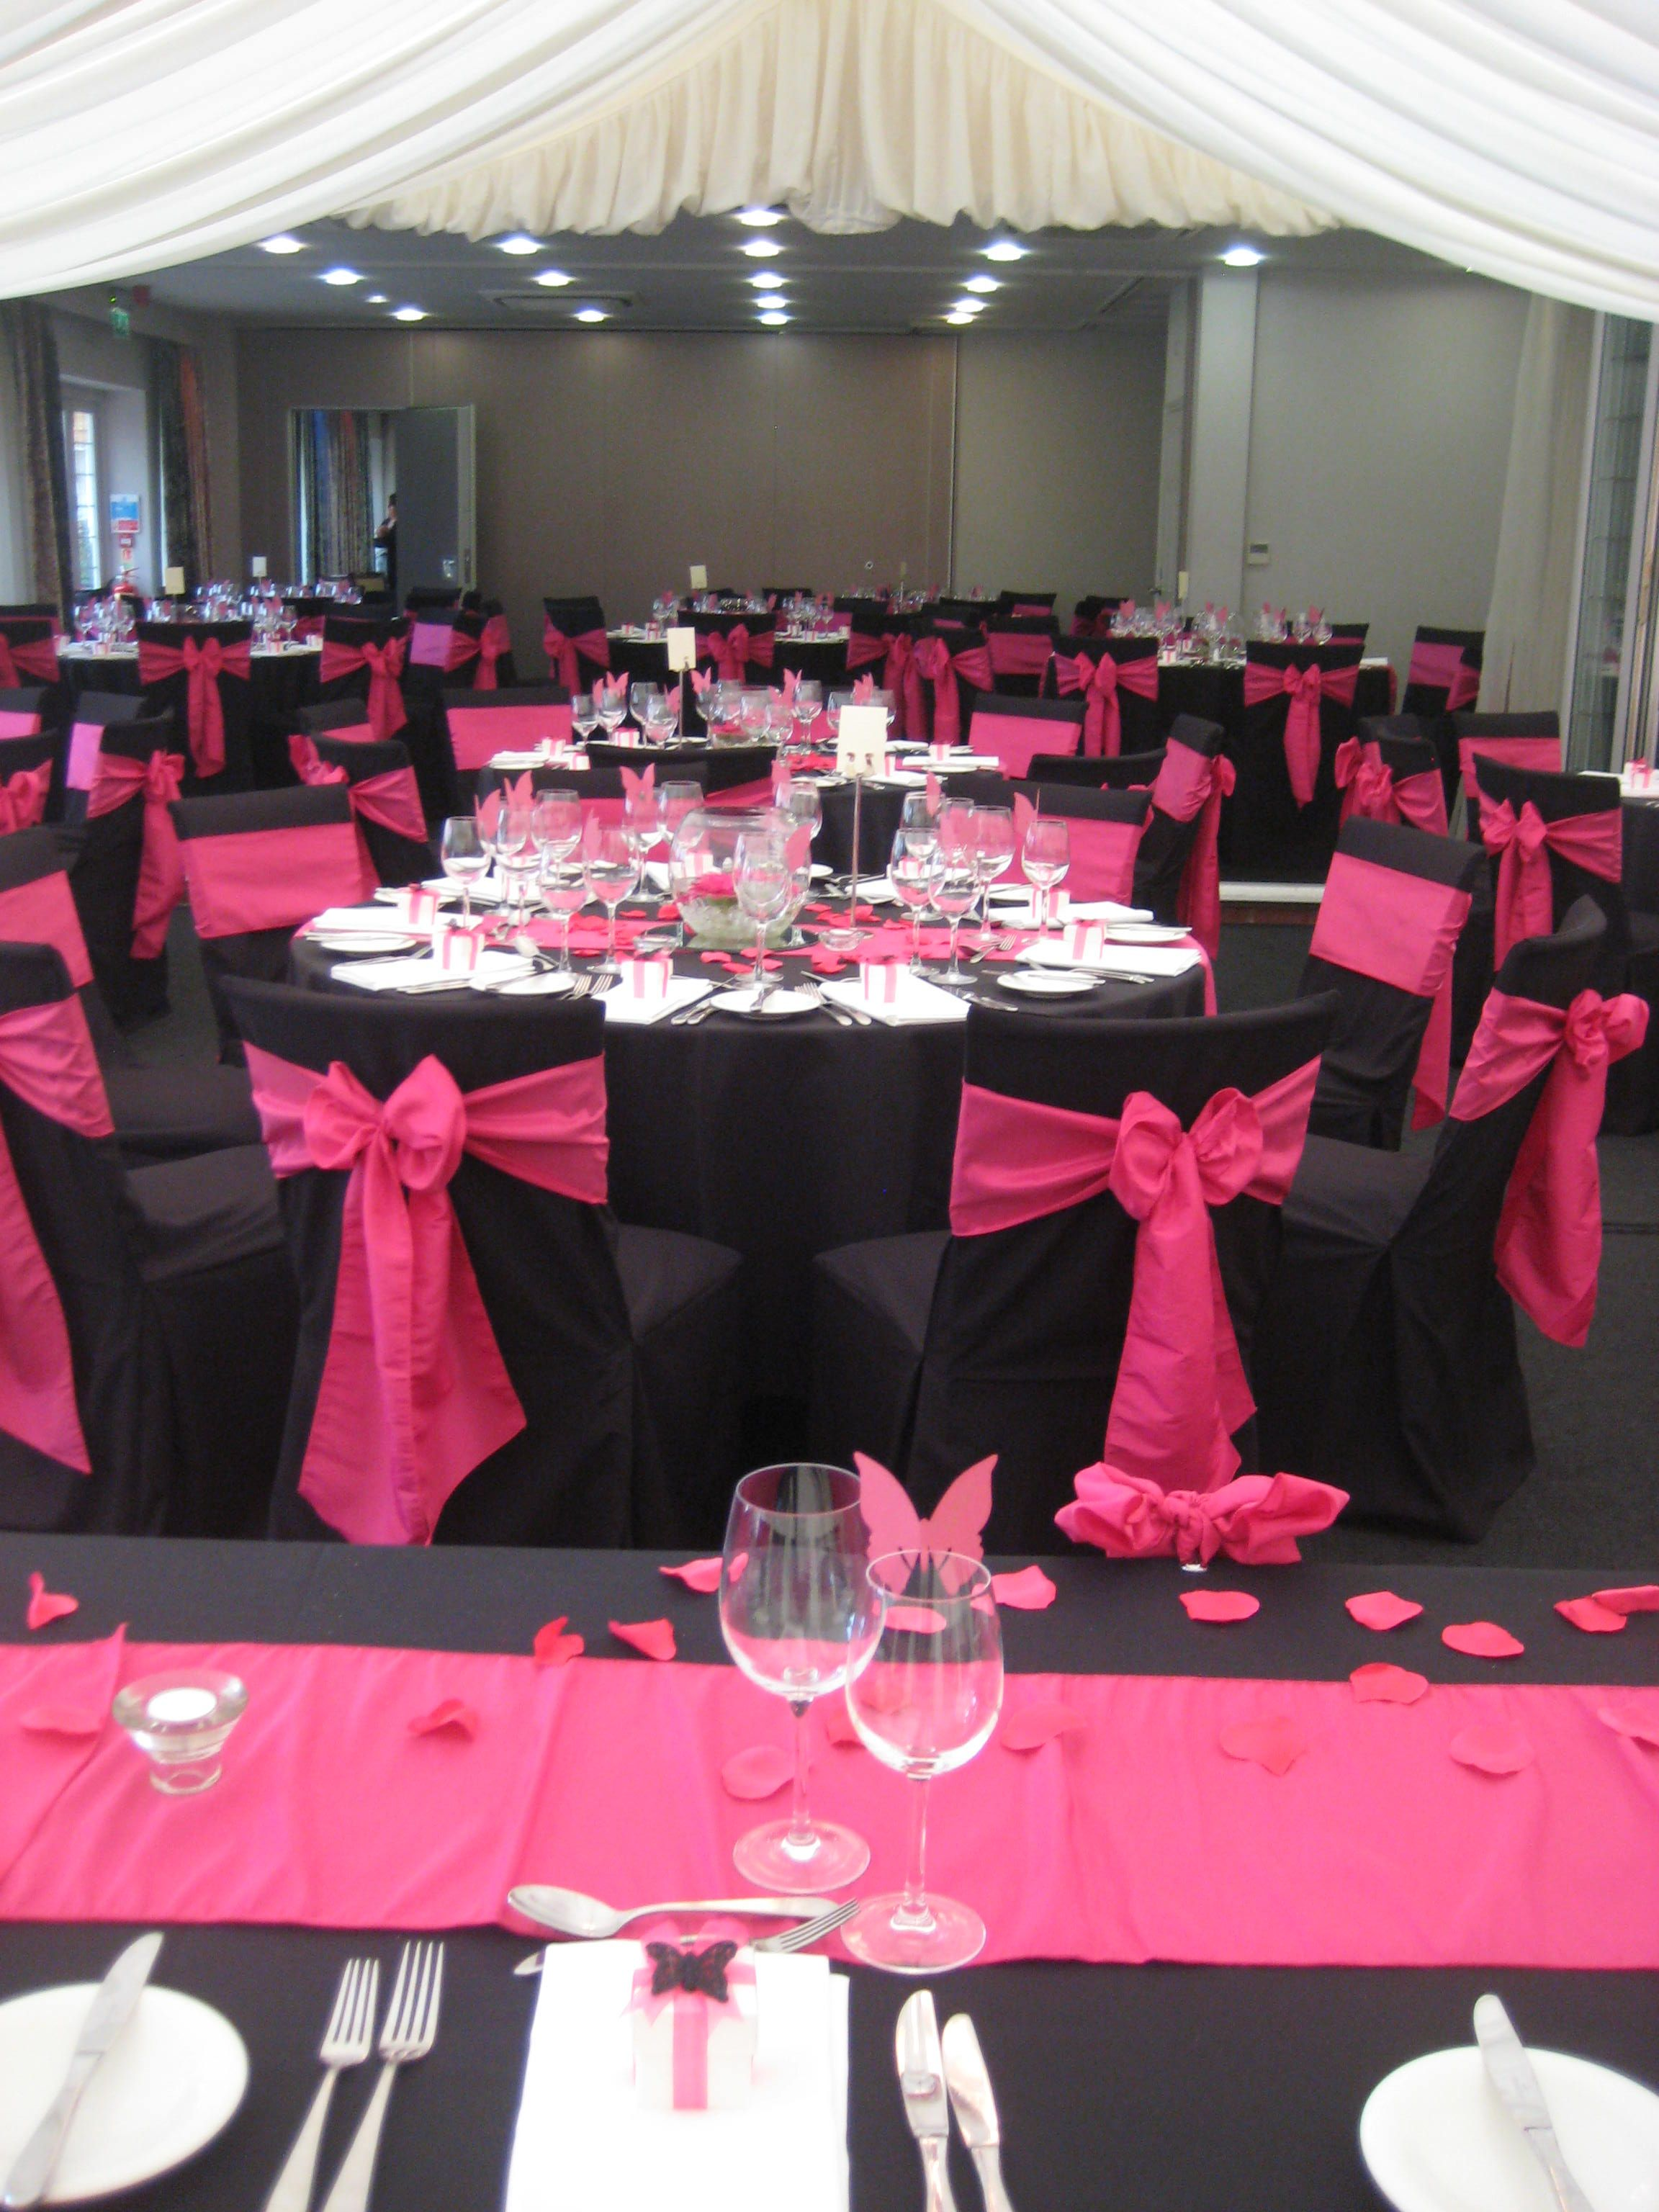 chair covers for you bariatric lift pink and black wedding rachael long these would be cute